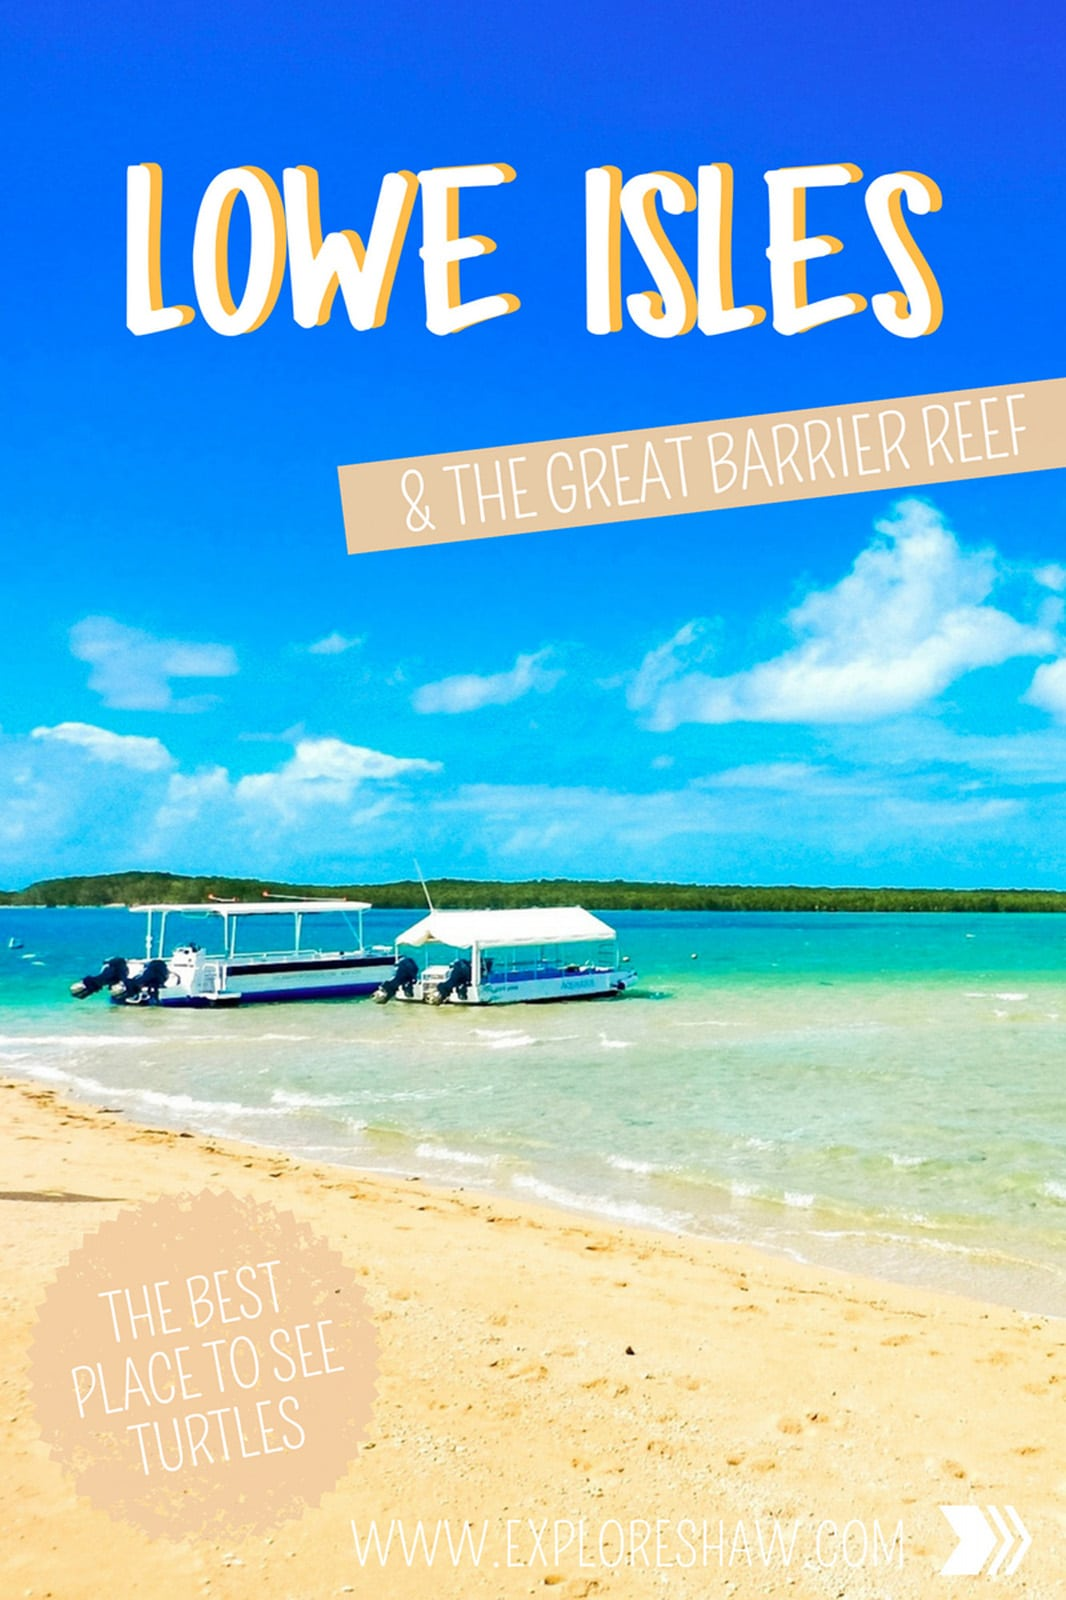 For a snorkelling day you won't forget, head out to Lowe Isles on a tour from Port Douglas, where you can experience this iconic reef from a private island!  #PortDouglas #Queensland #Australia #TropicalNorthQueensland